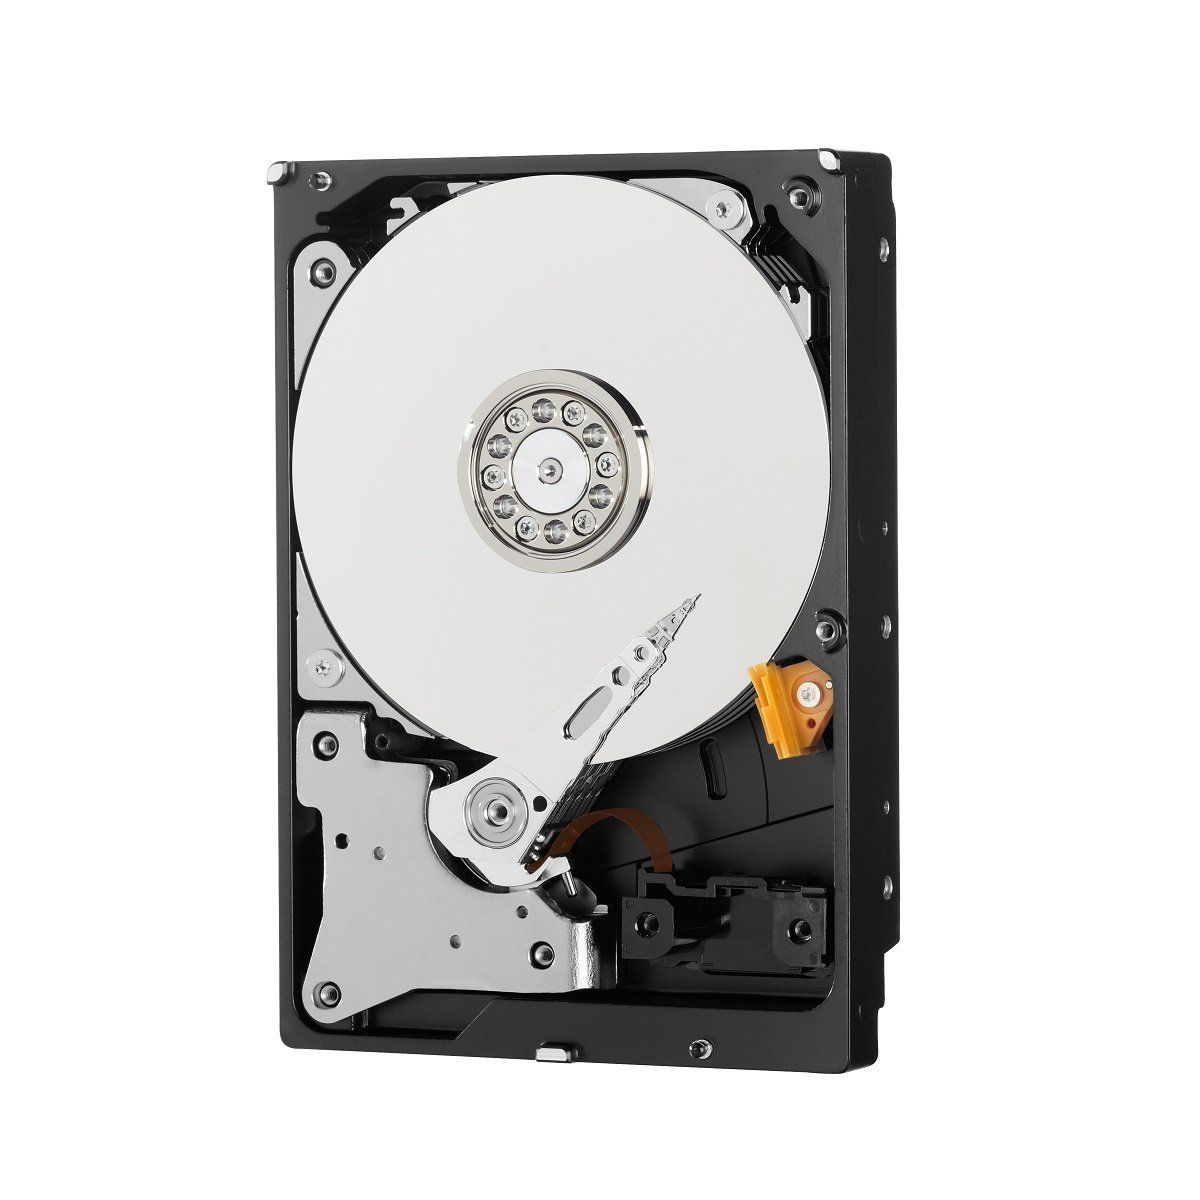 HD WD (Western Digital) Purple Surveillance CFTV 1TB IntelliPower 64MB Cache Sata III 3.5' 6.0Gb/s - WD10PURZ